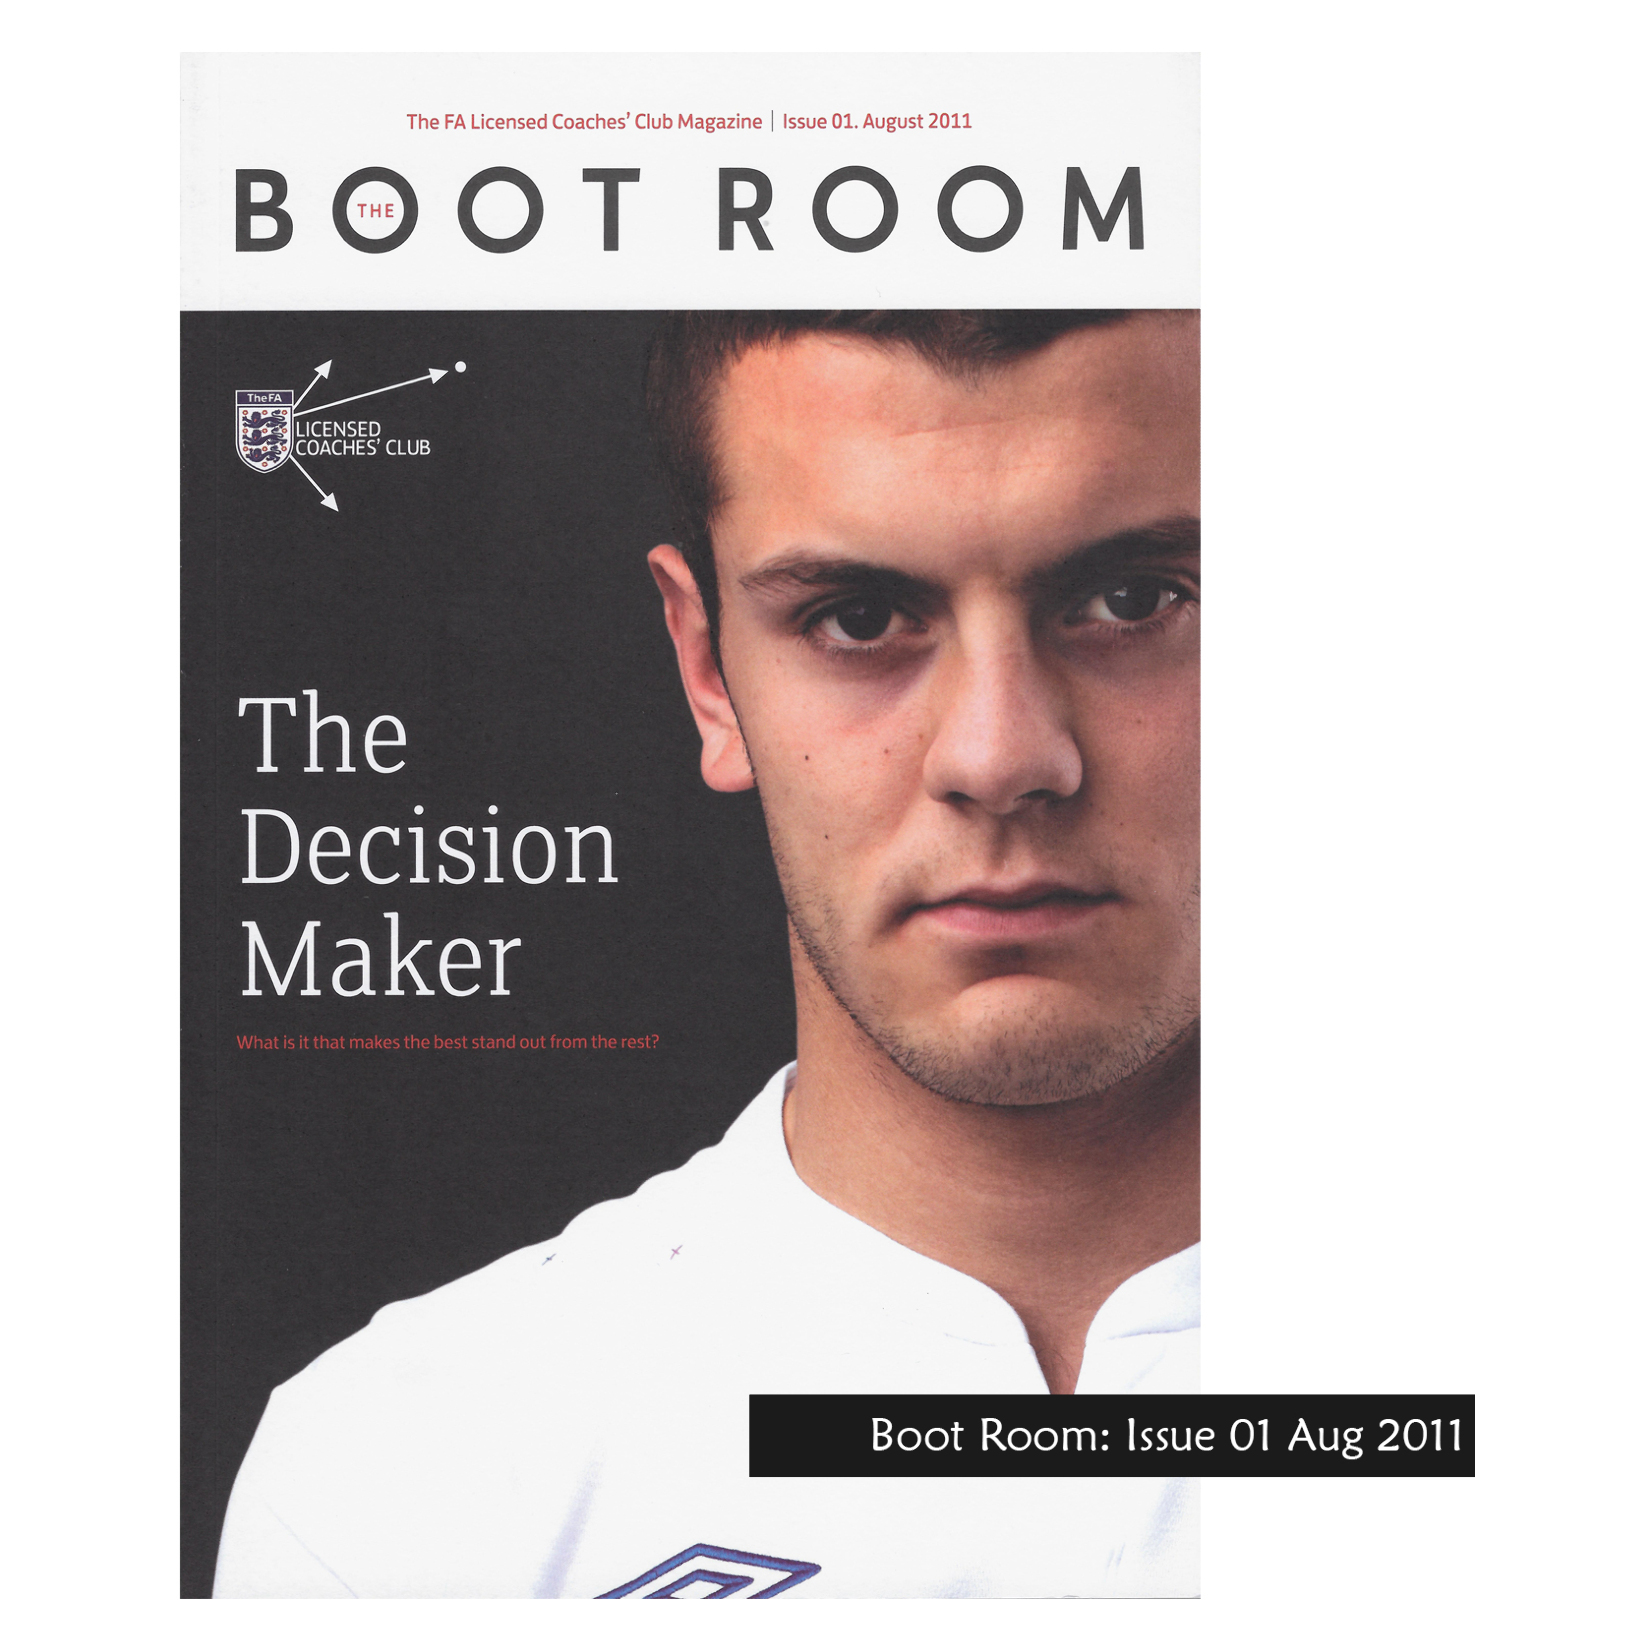 FA Boot Room Issue 01 - Magazine Misc-1-2076-4429